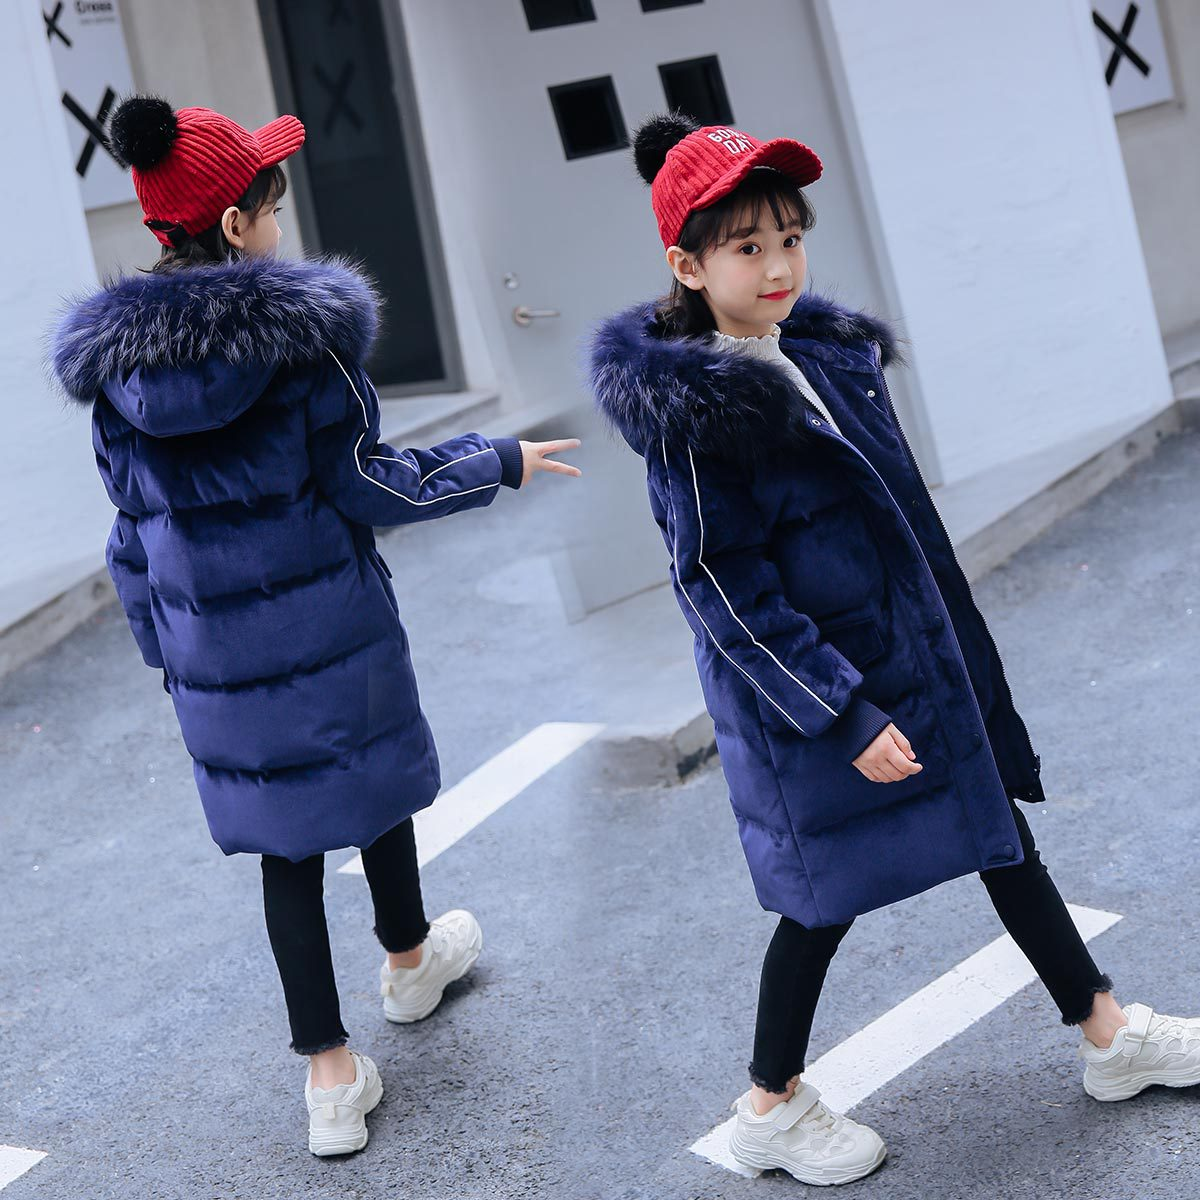 In 2018 the new children's clothing han edition cuhk children down jacket girls in long tong pleuche thickening coat girls down jacket long in the new fashion winter 2017 female children upset han edition tide leisure coat